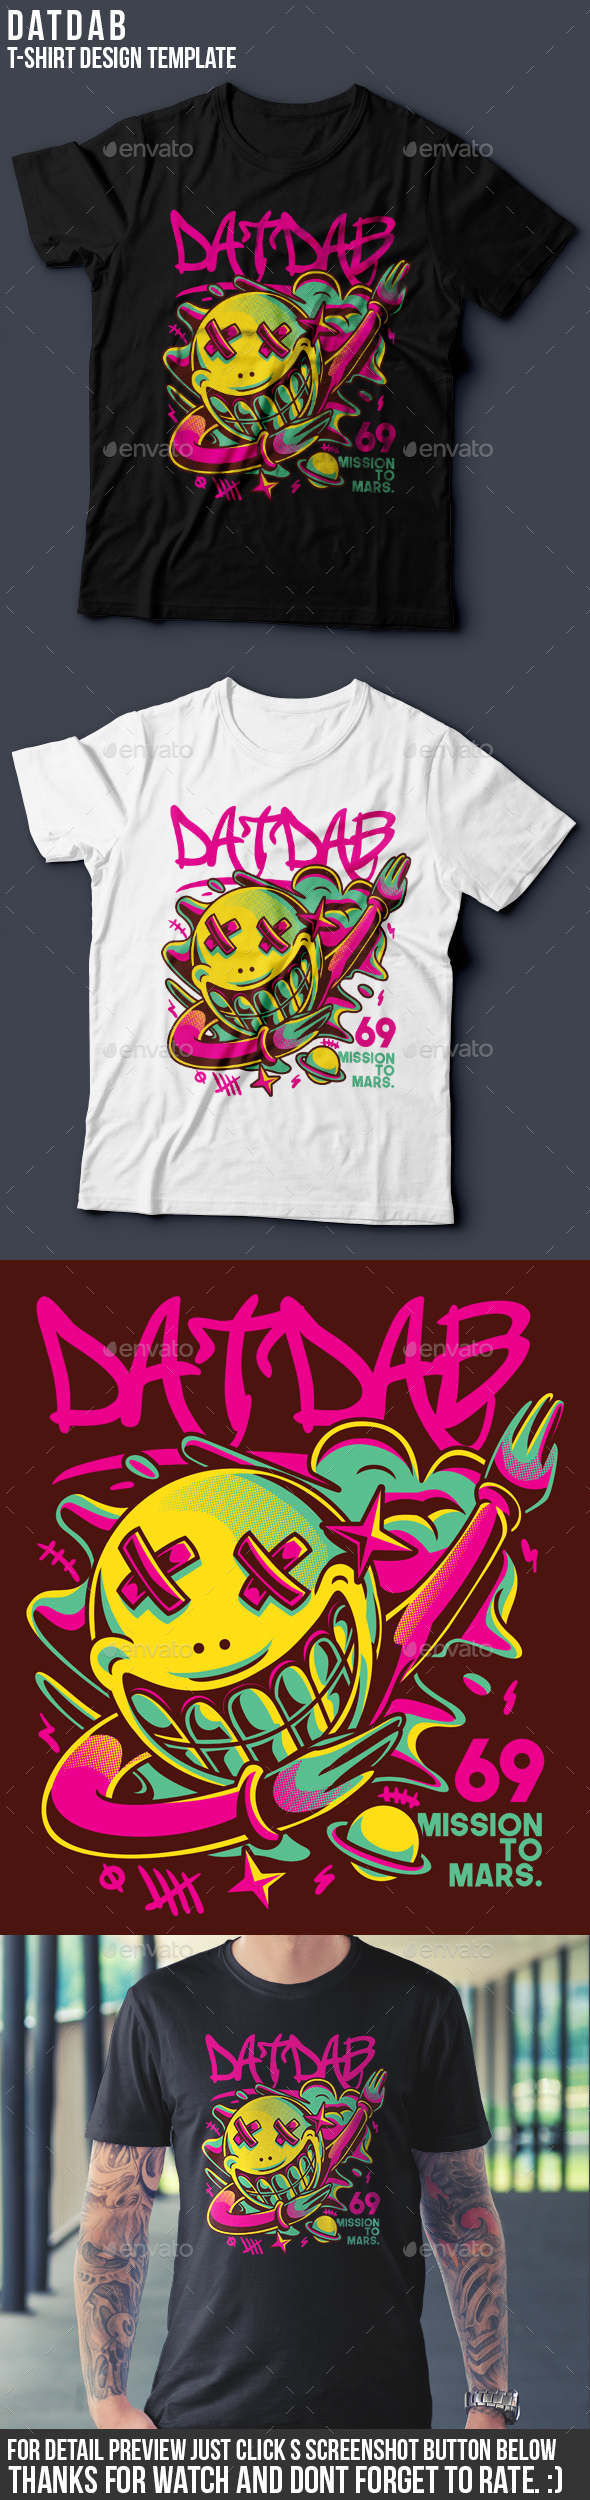 Dat Dab T-Shirt Design - Events T-Shirts